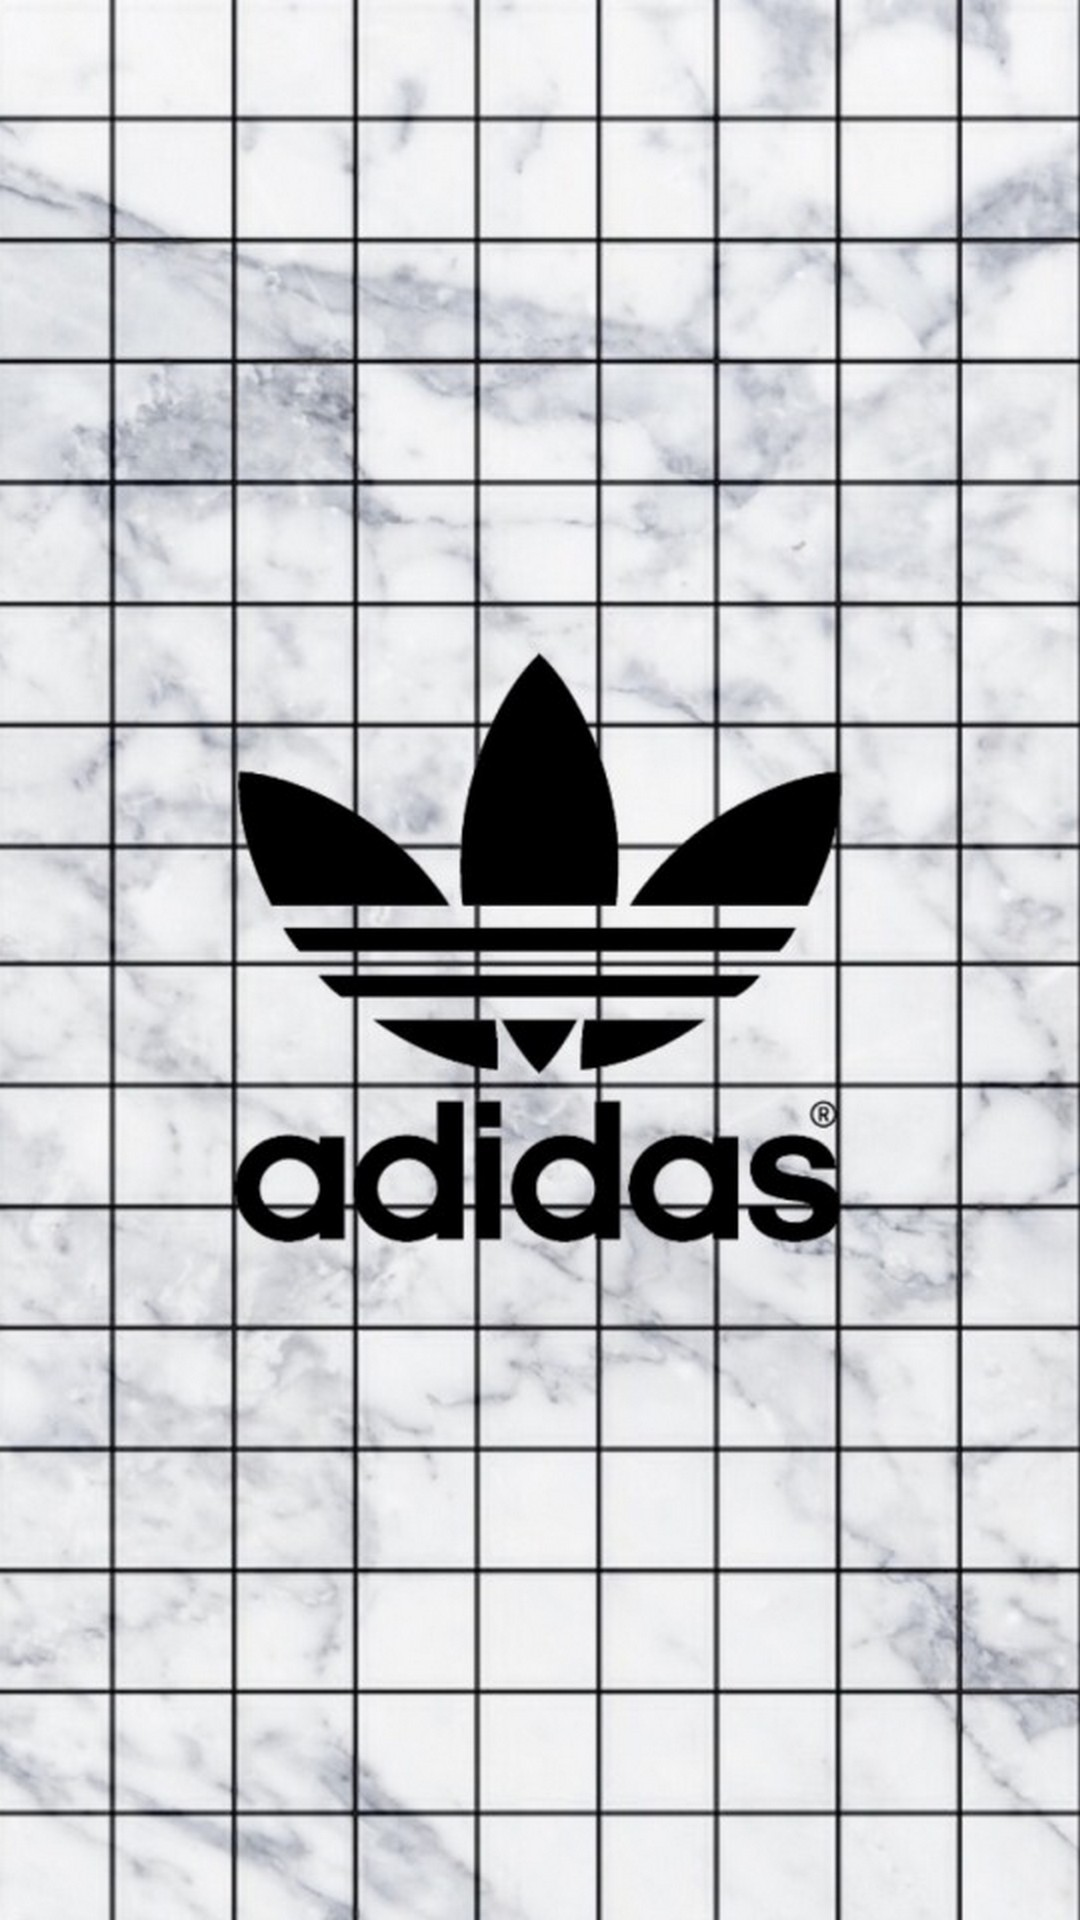 Adidas Logo Android Wallpaper with high-resolution 1080x1920 pixel. You can use this wallpaper for your Android backgrounds, Tablet, Samsung Screensavers, Mobile Phone Lock Screen and another Smartphones device